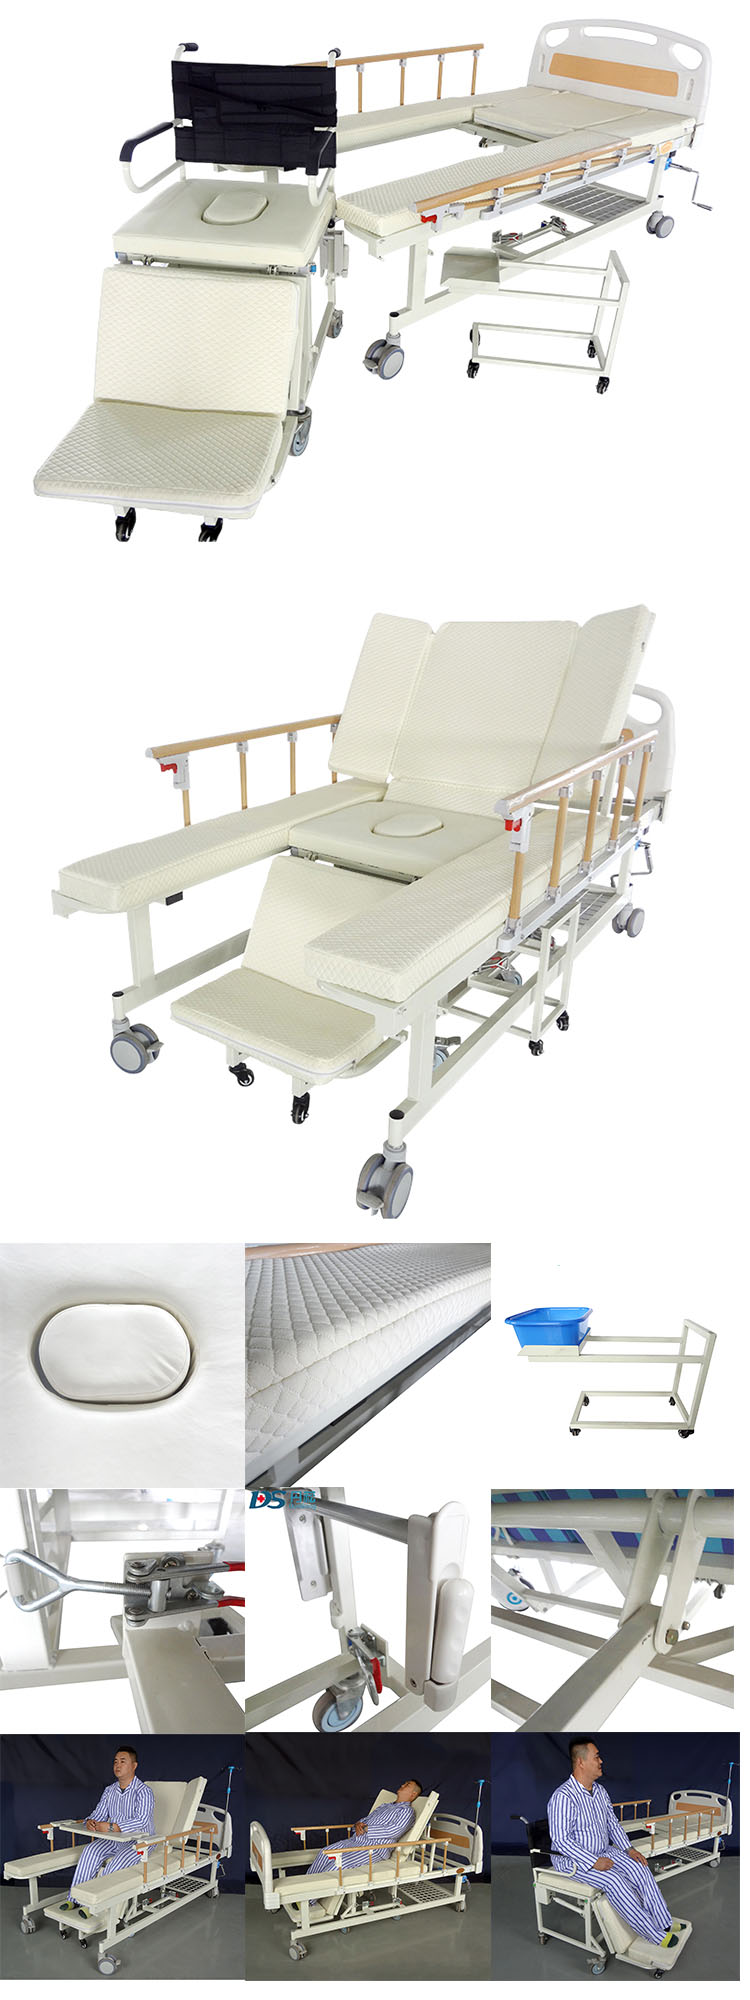 5 function manual adjustable elderly home nursing medical hospital wheelchair cum bed with toilet MNB-05